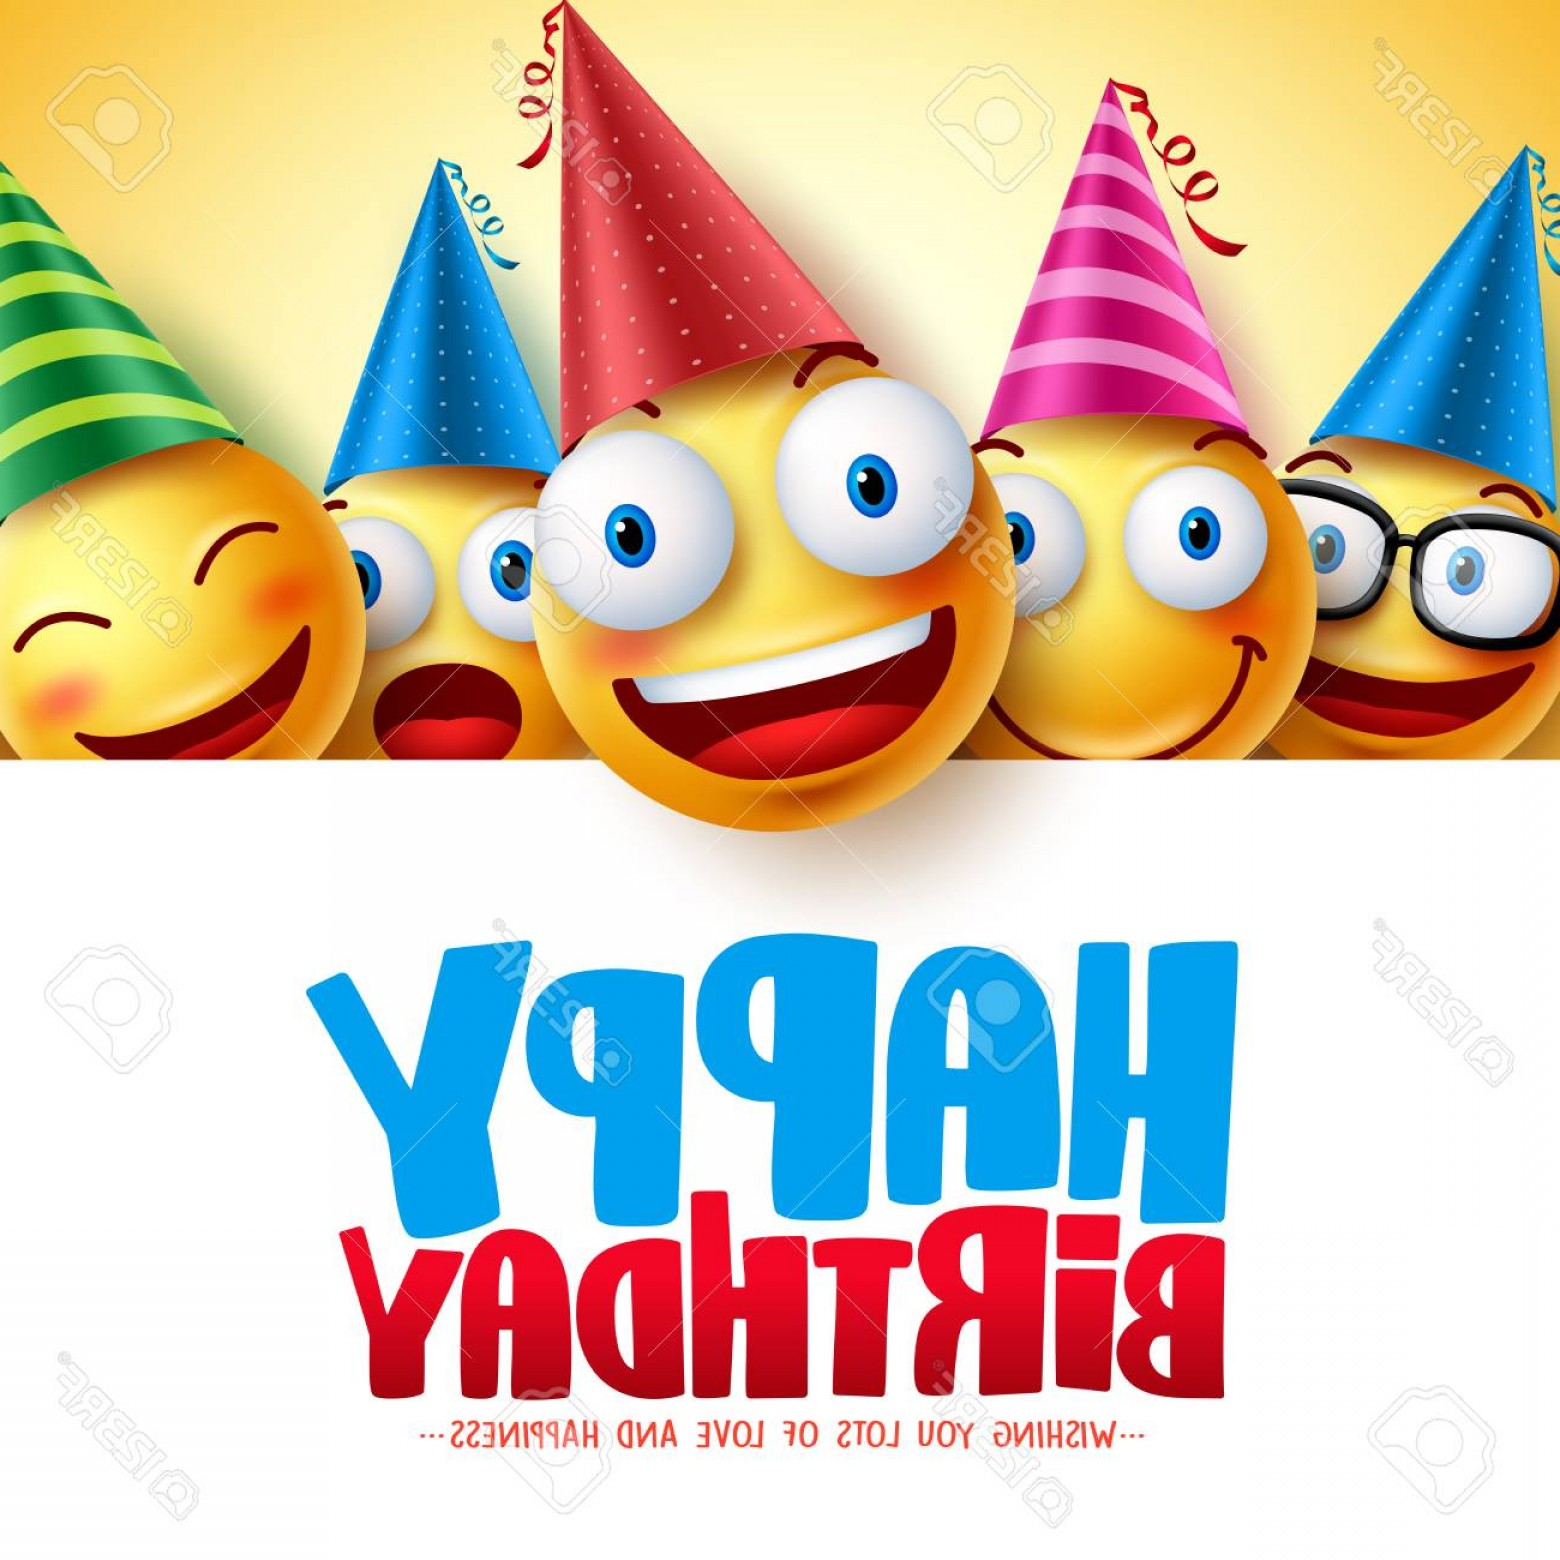 Happy Birthday Vector Art Backdrop: Photostock Vector Happy Birthday Smileys Vector Background Design With Yellow Funny And Happy Emoticons And Birthday G